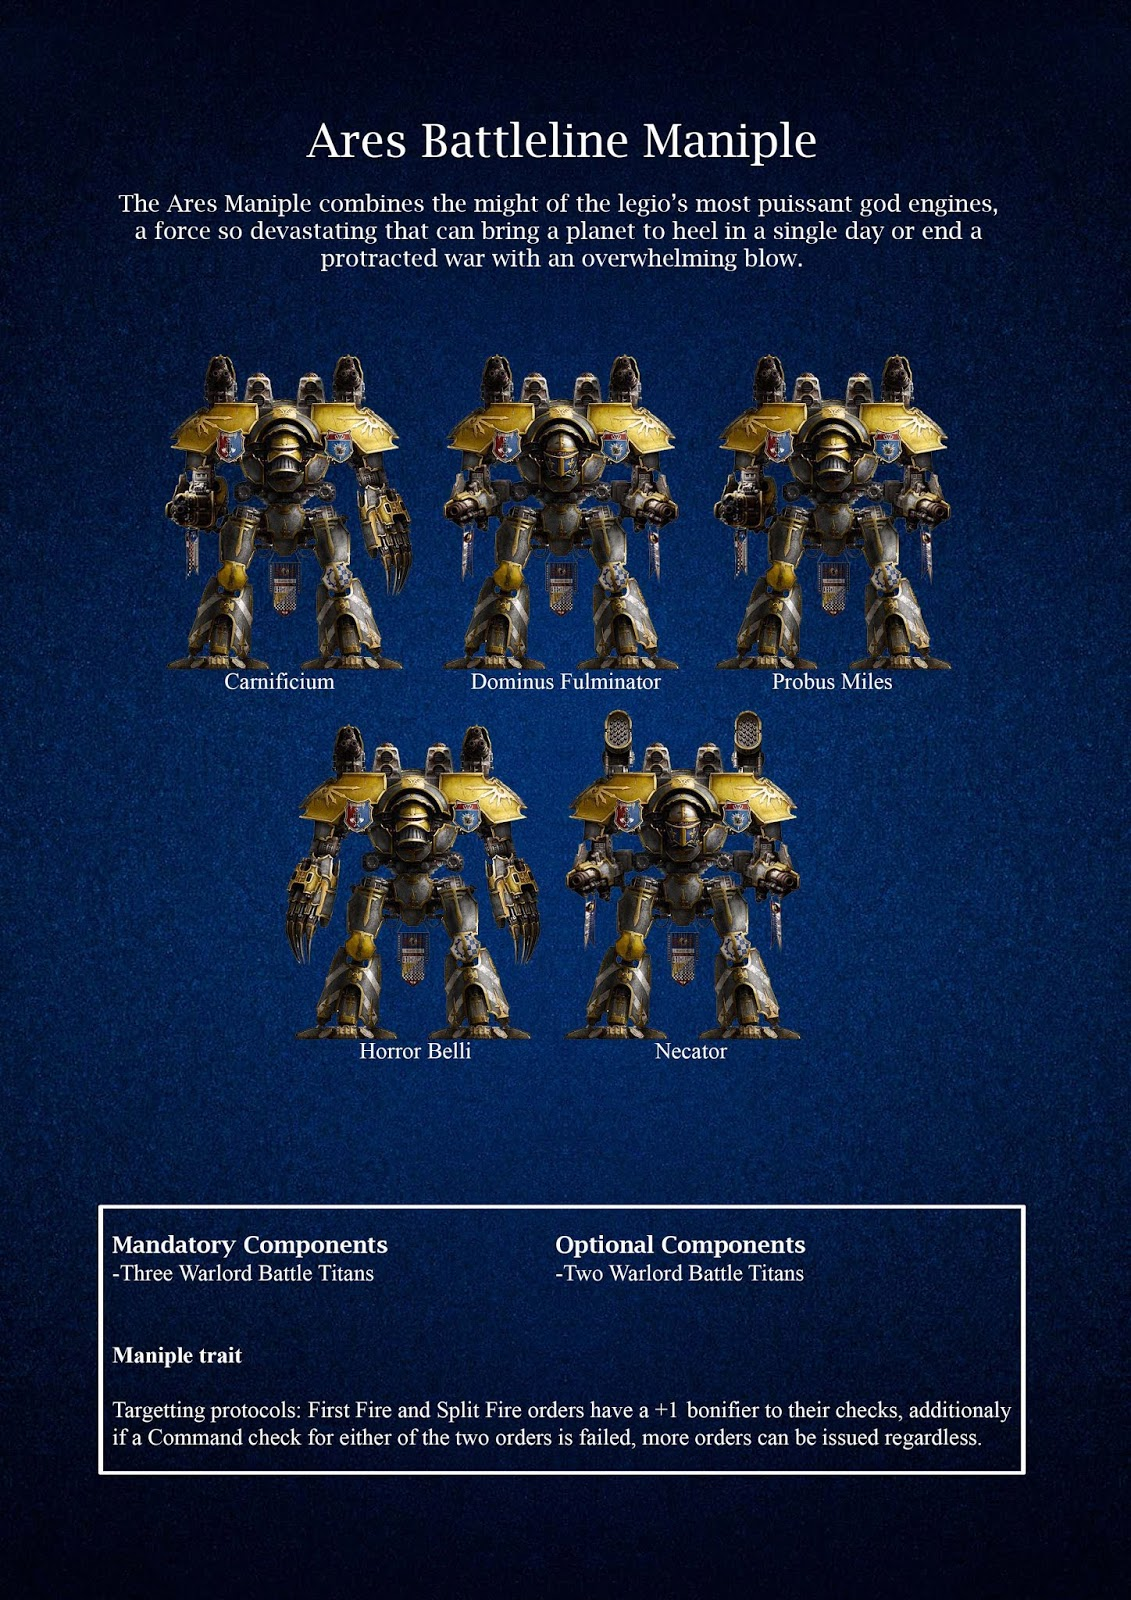 Noigrim's Hobby: Ares maniple